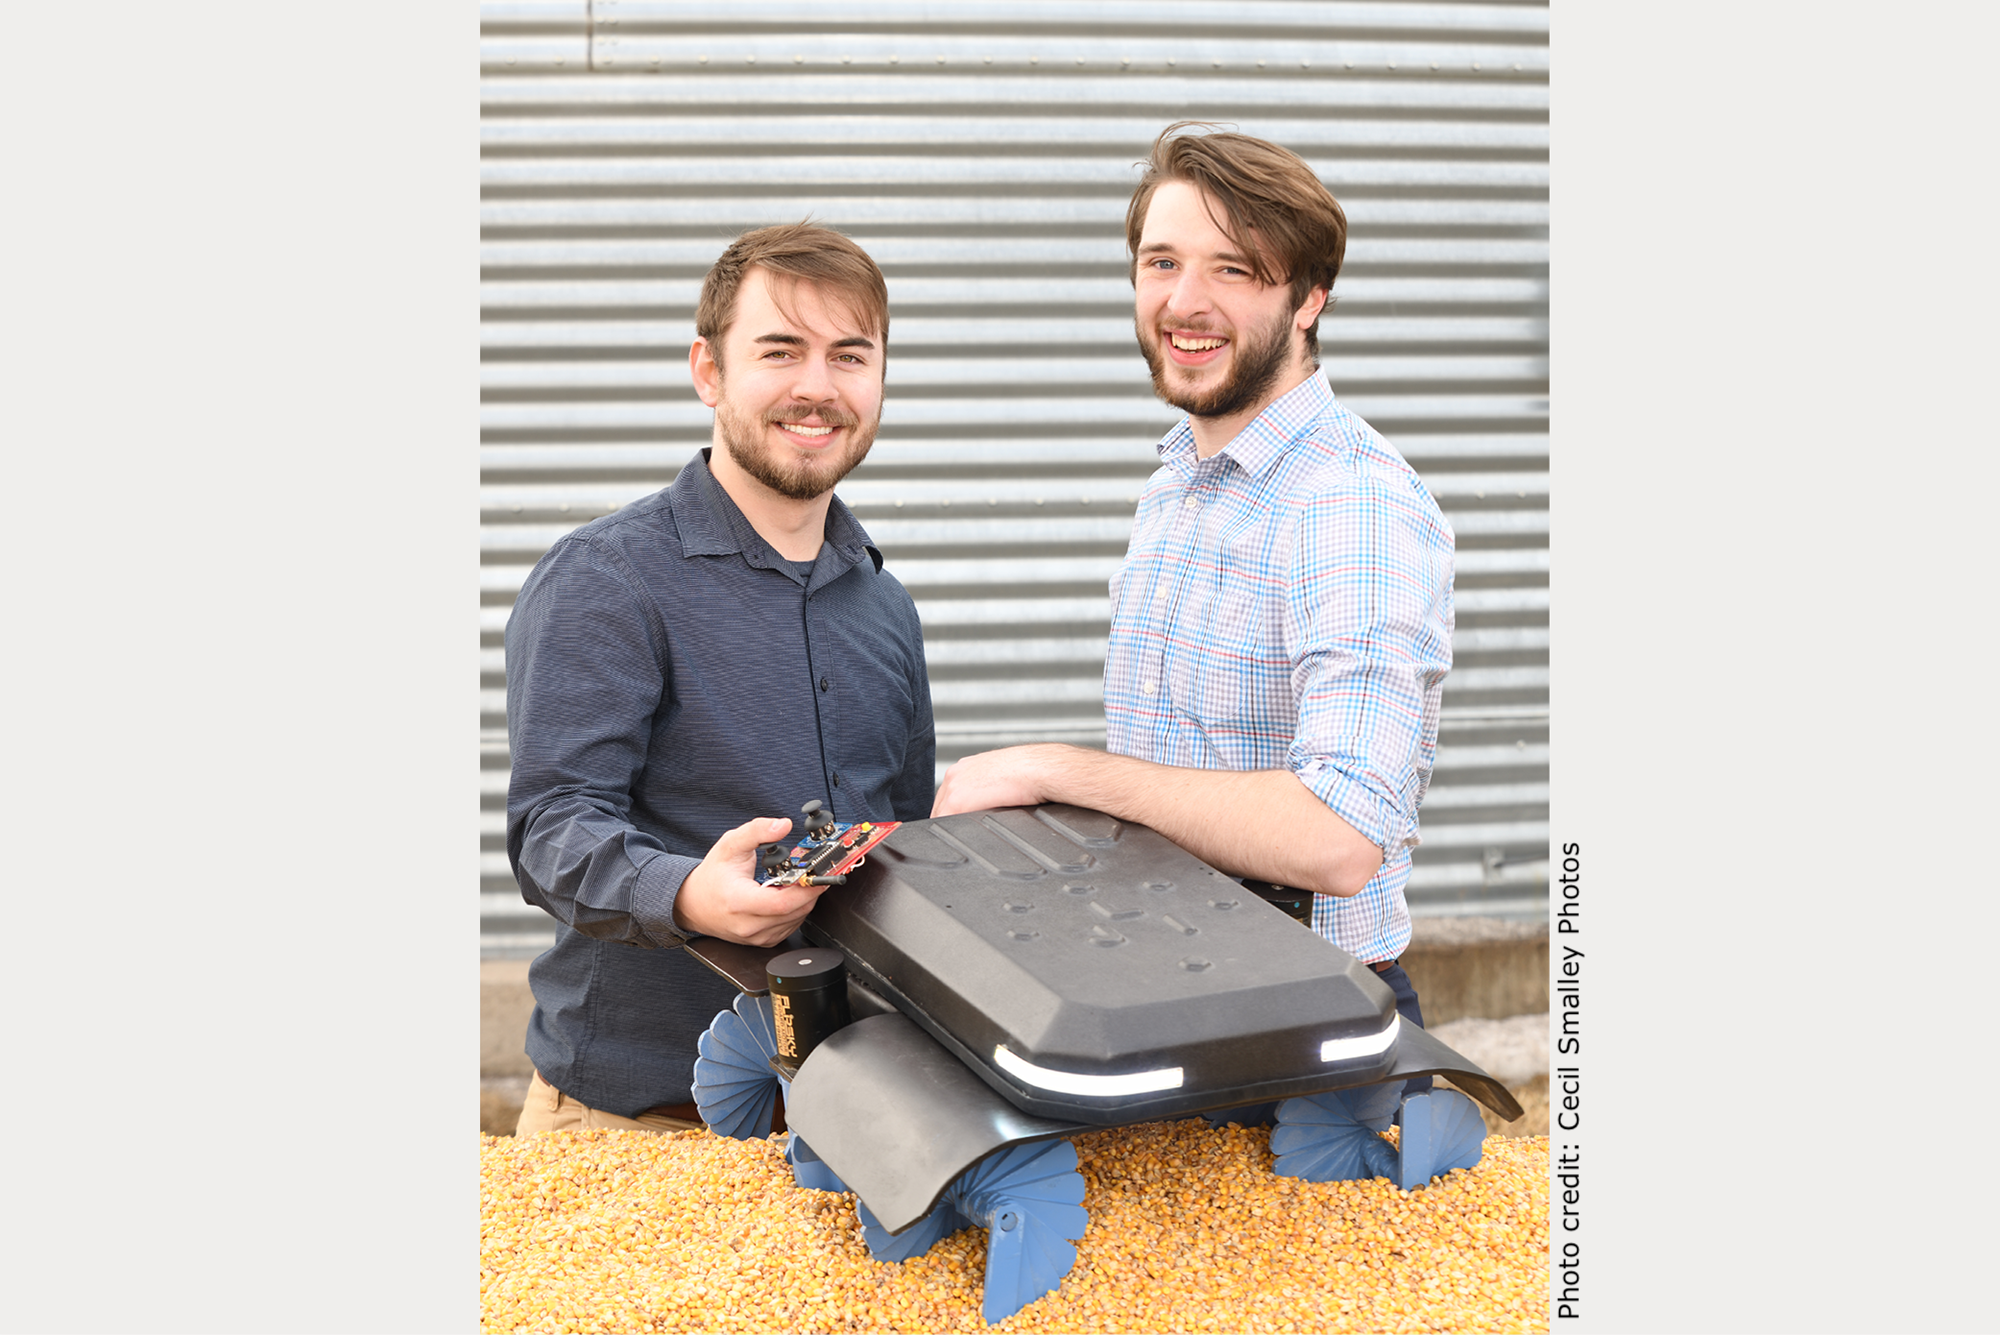 University of Nebraska Omaha undergraduate students Benjamin Johnson and Zane Zents with their Grain Weevil robot that is sitting on top of a pile of grain.